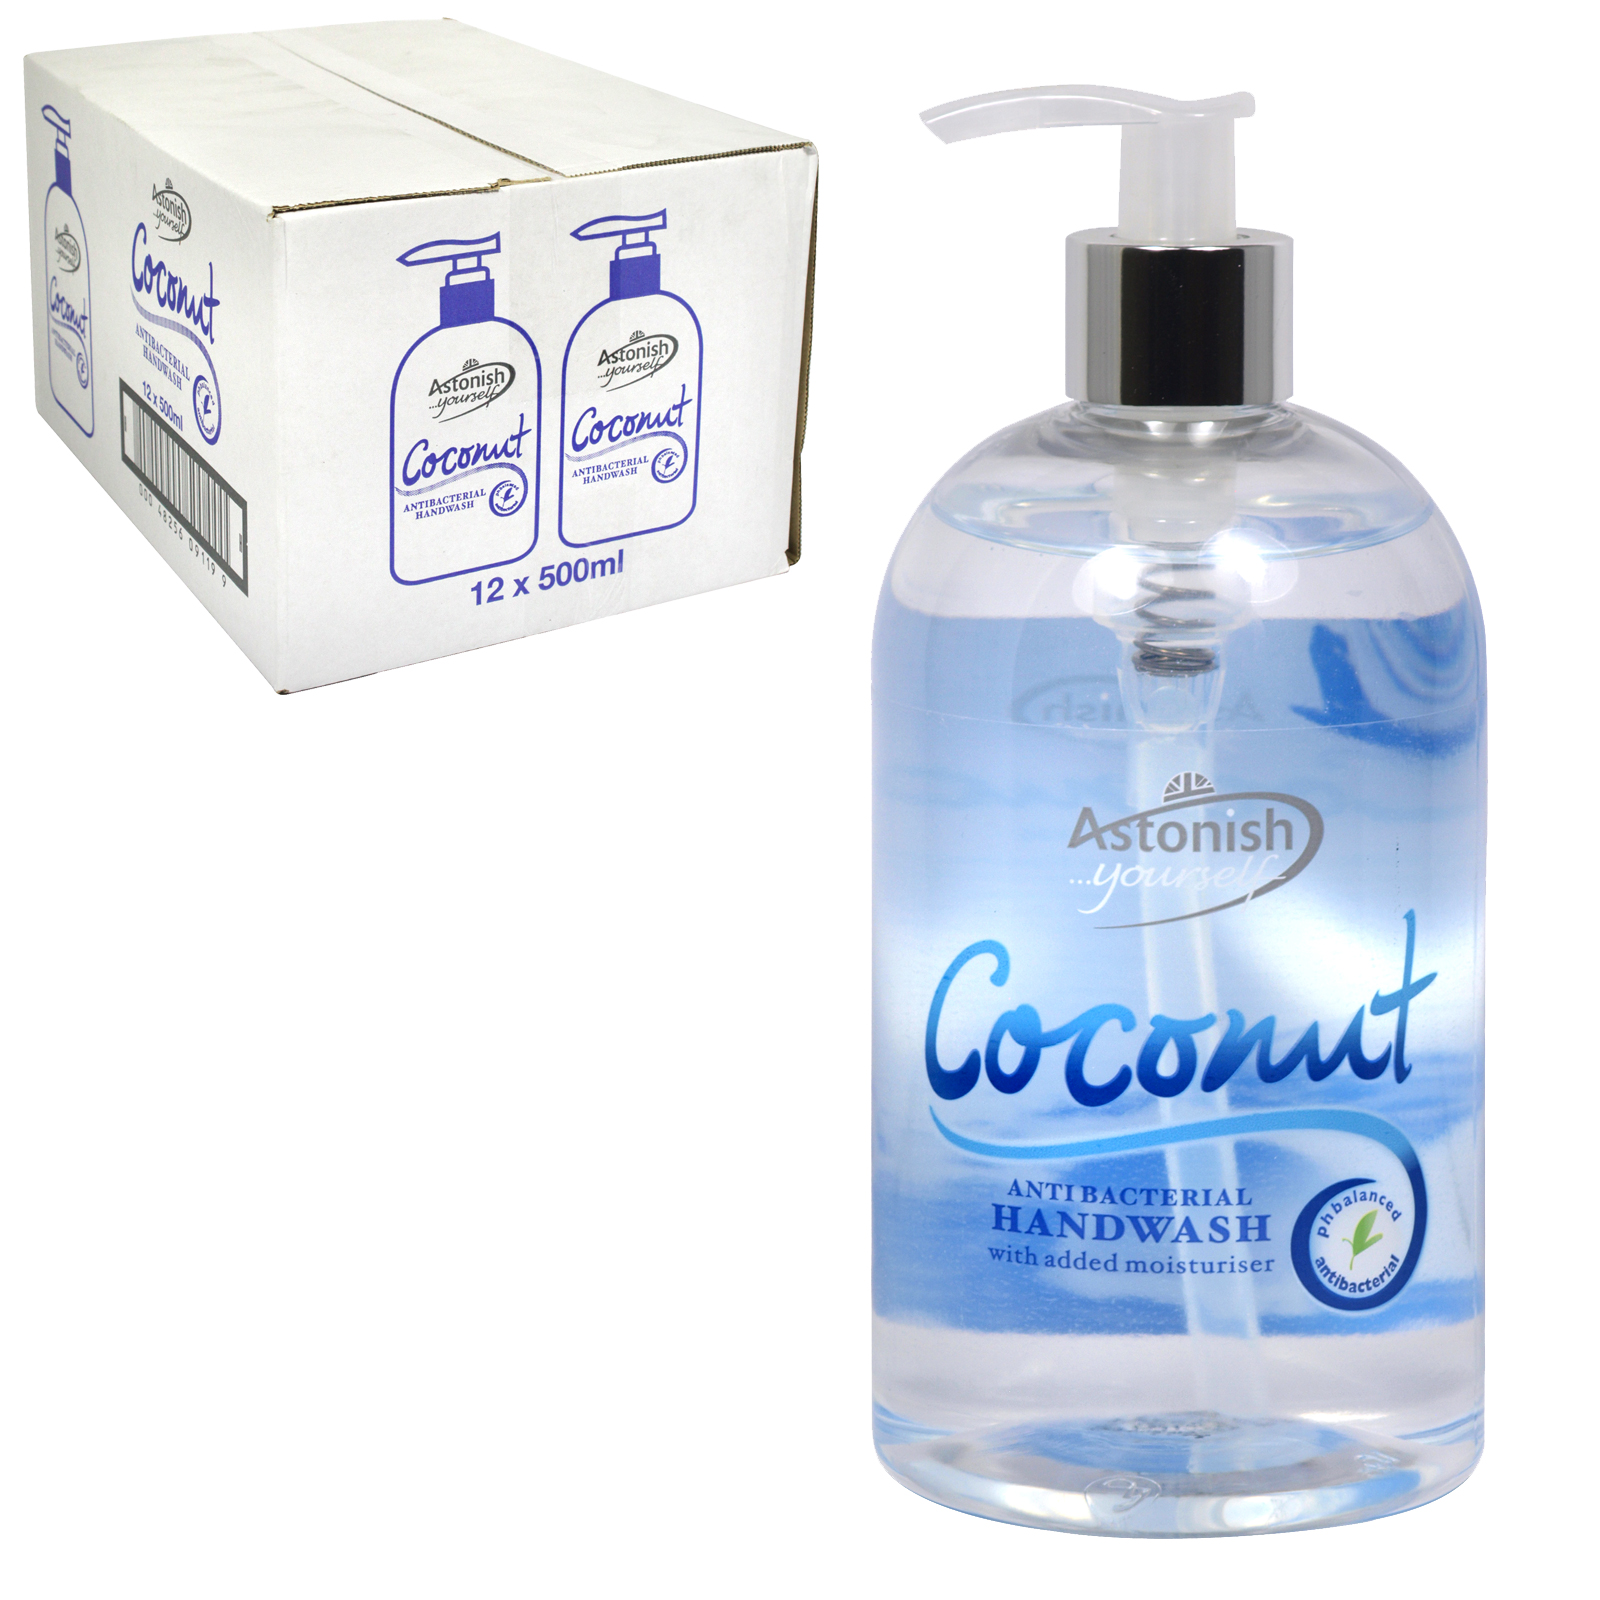 ASTONISH ANTI-BAC HANDWASH 500ML COCONUT X12